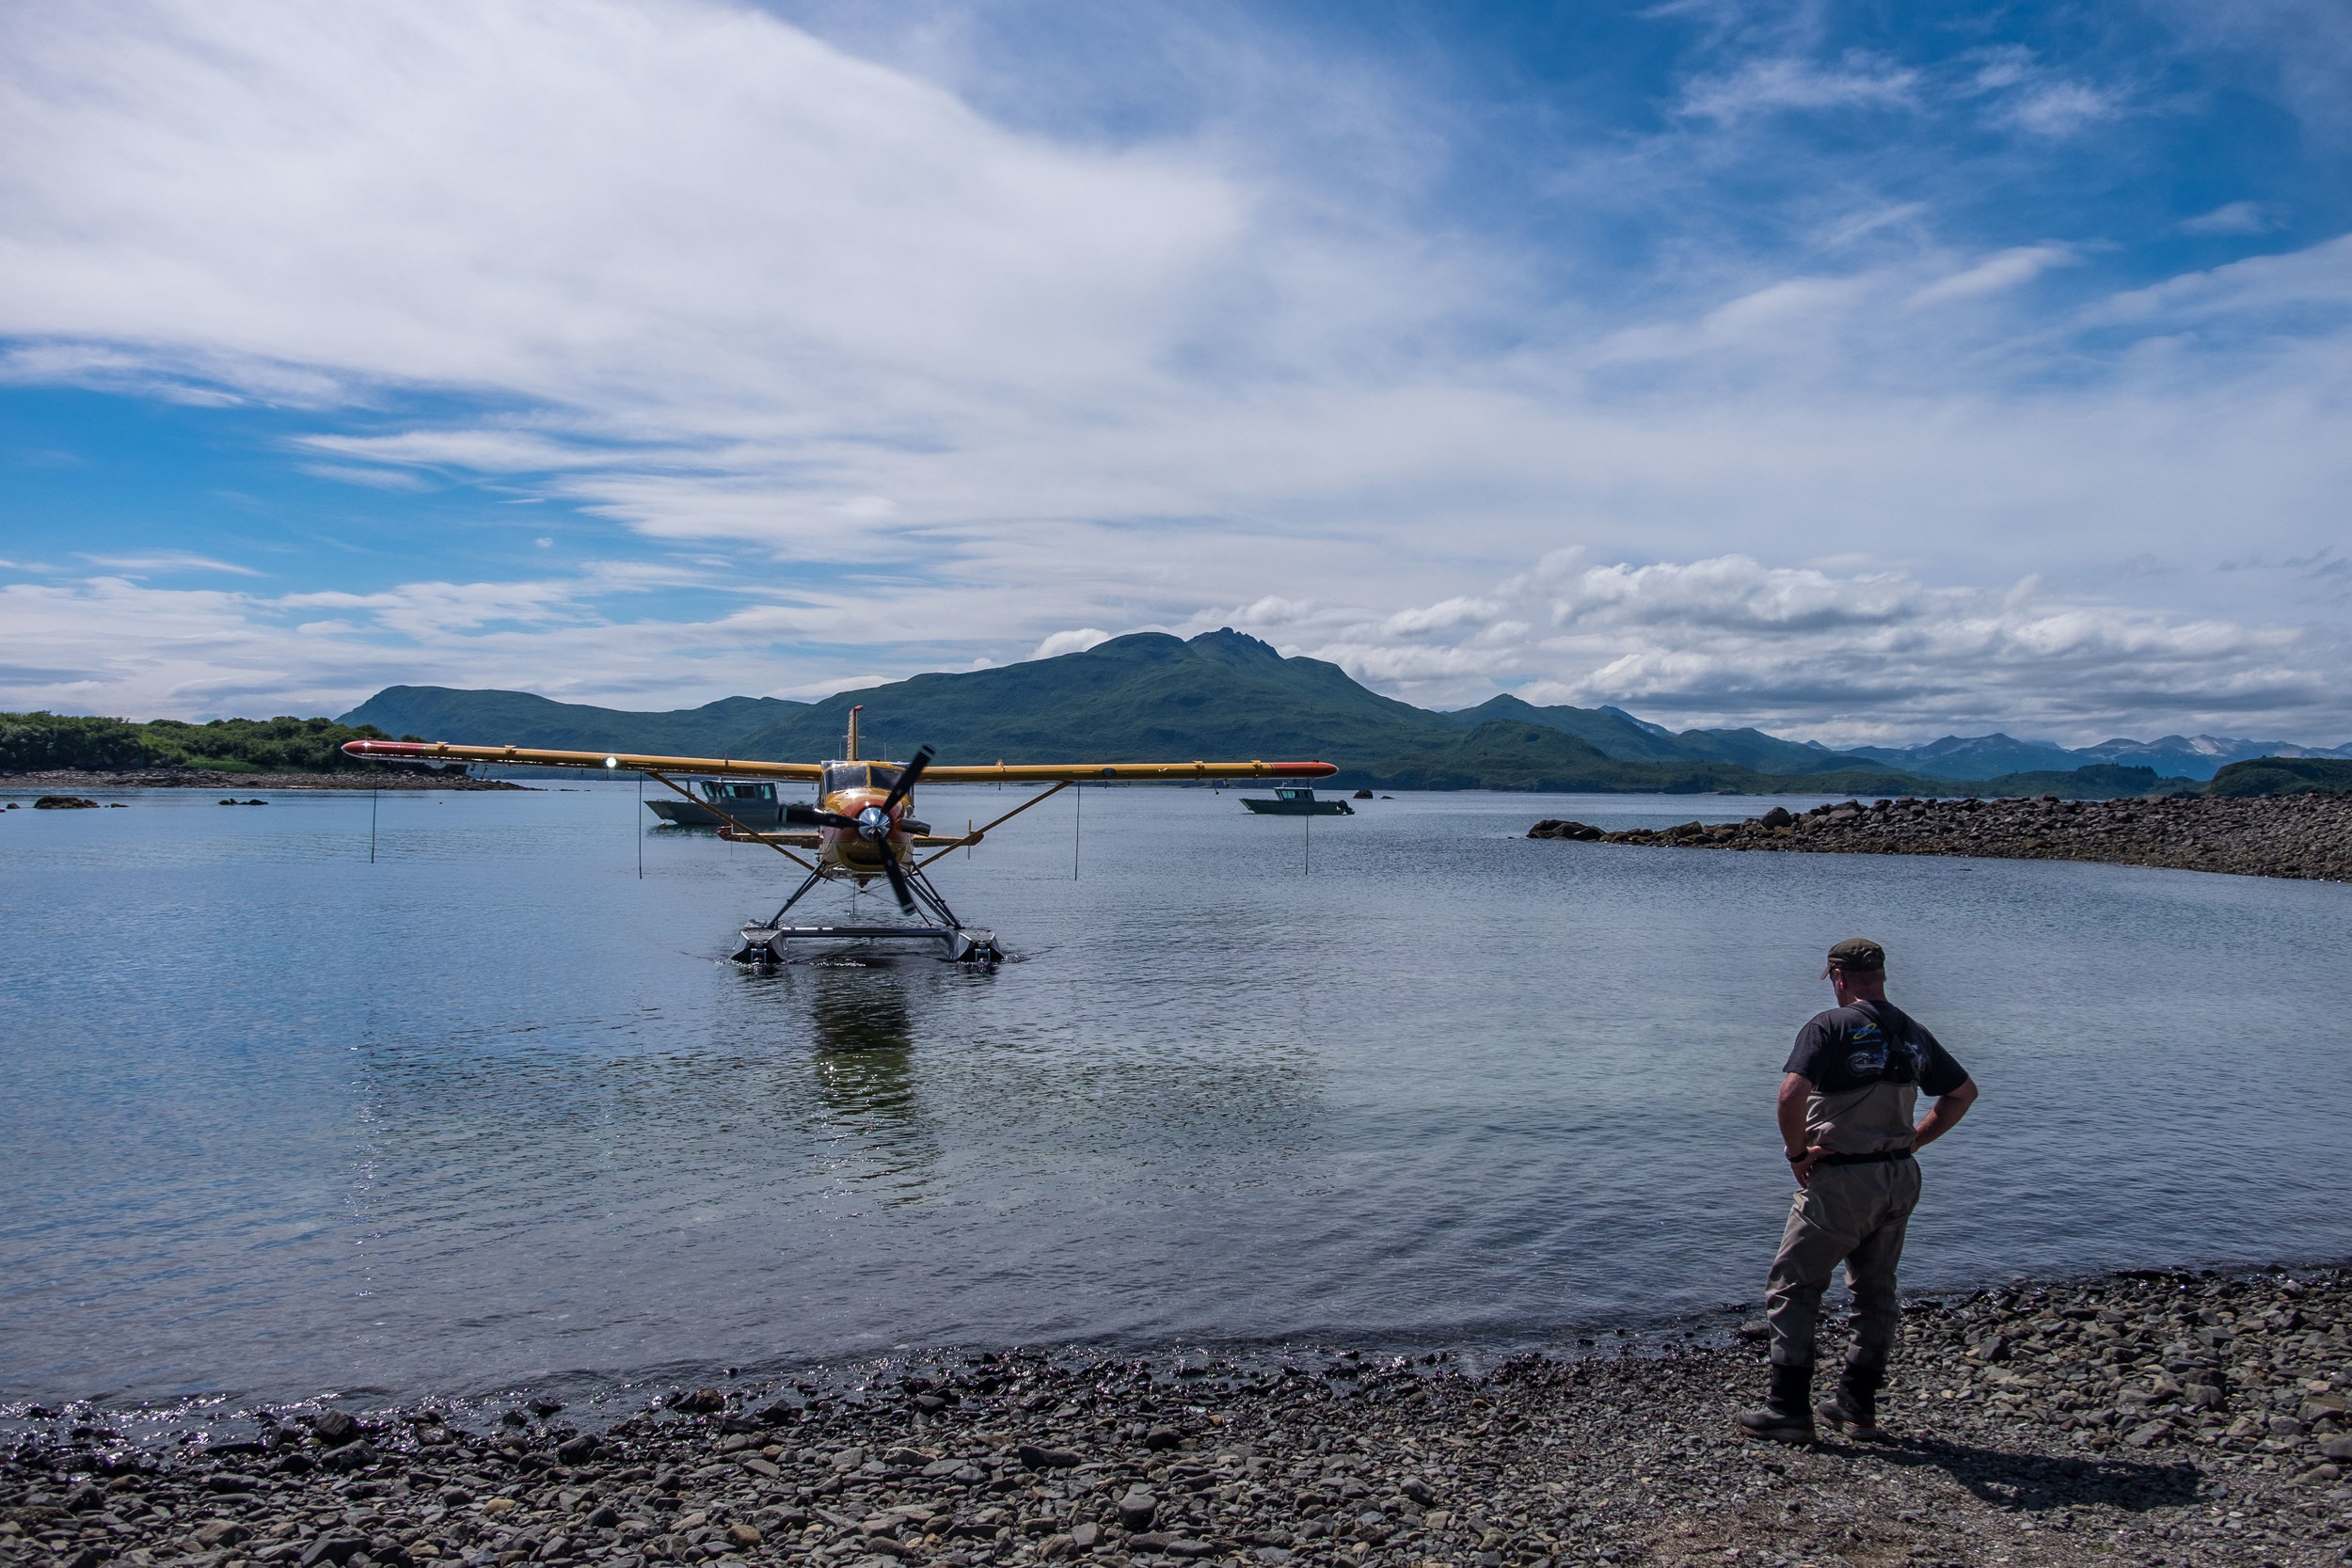 Perry Mollan, manager and bear naturalist at the Katmai Wilderness Lodge works with the crew at Andrews Airways to offload guests and supplies in the harbor outside of the lodge.